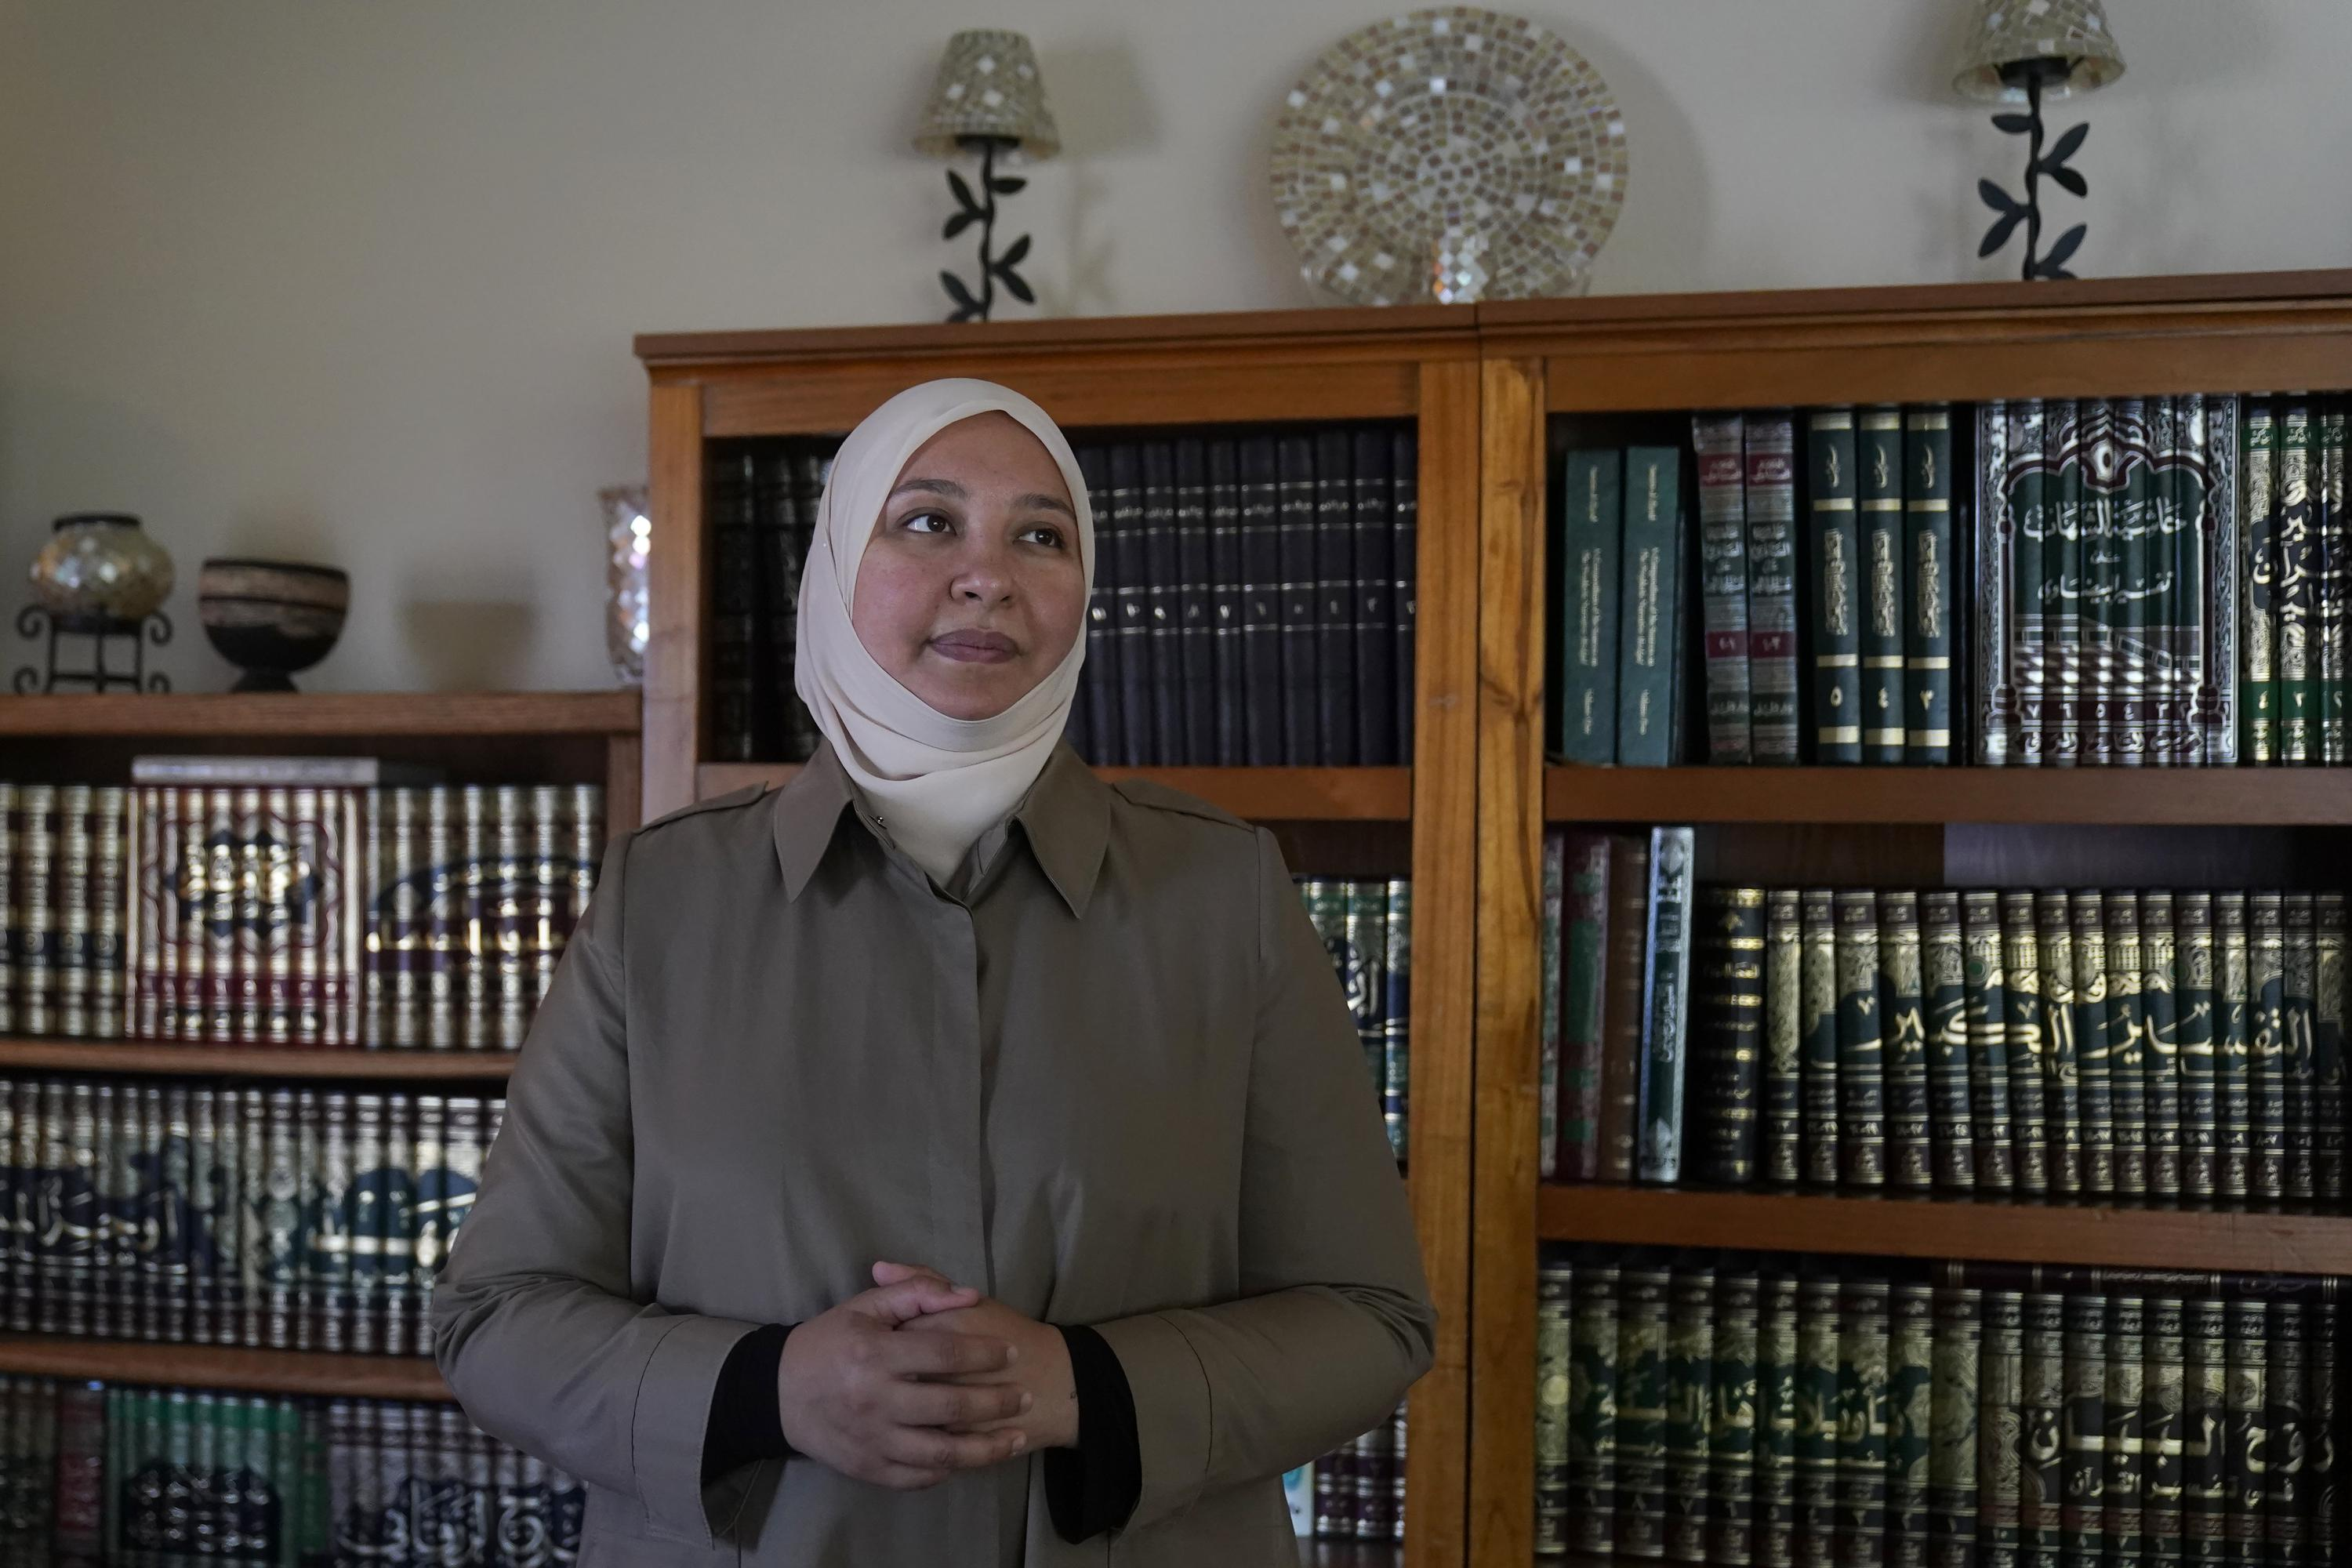 For some US Muslims, raw talk on suicide, mental health